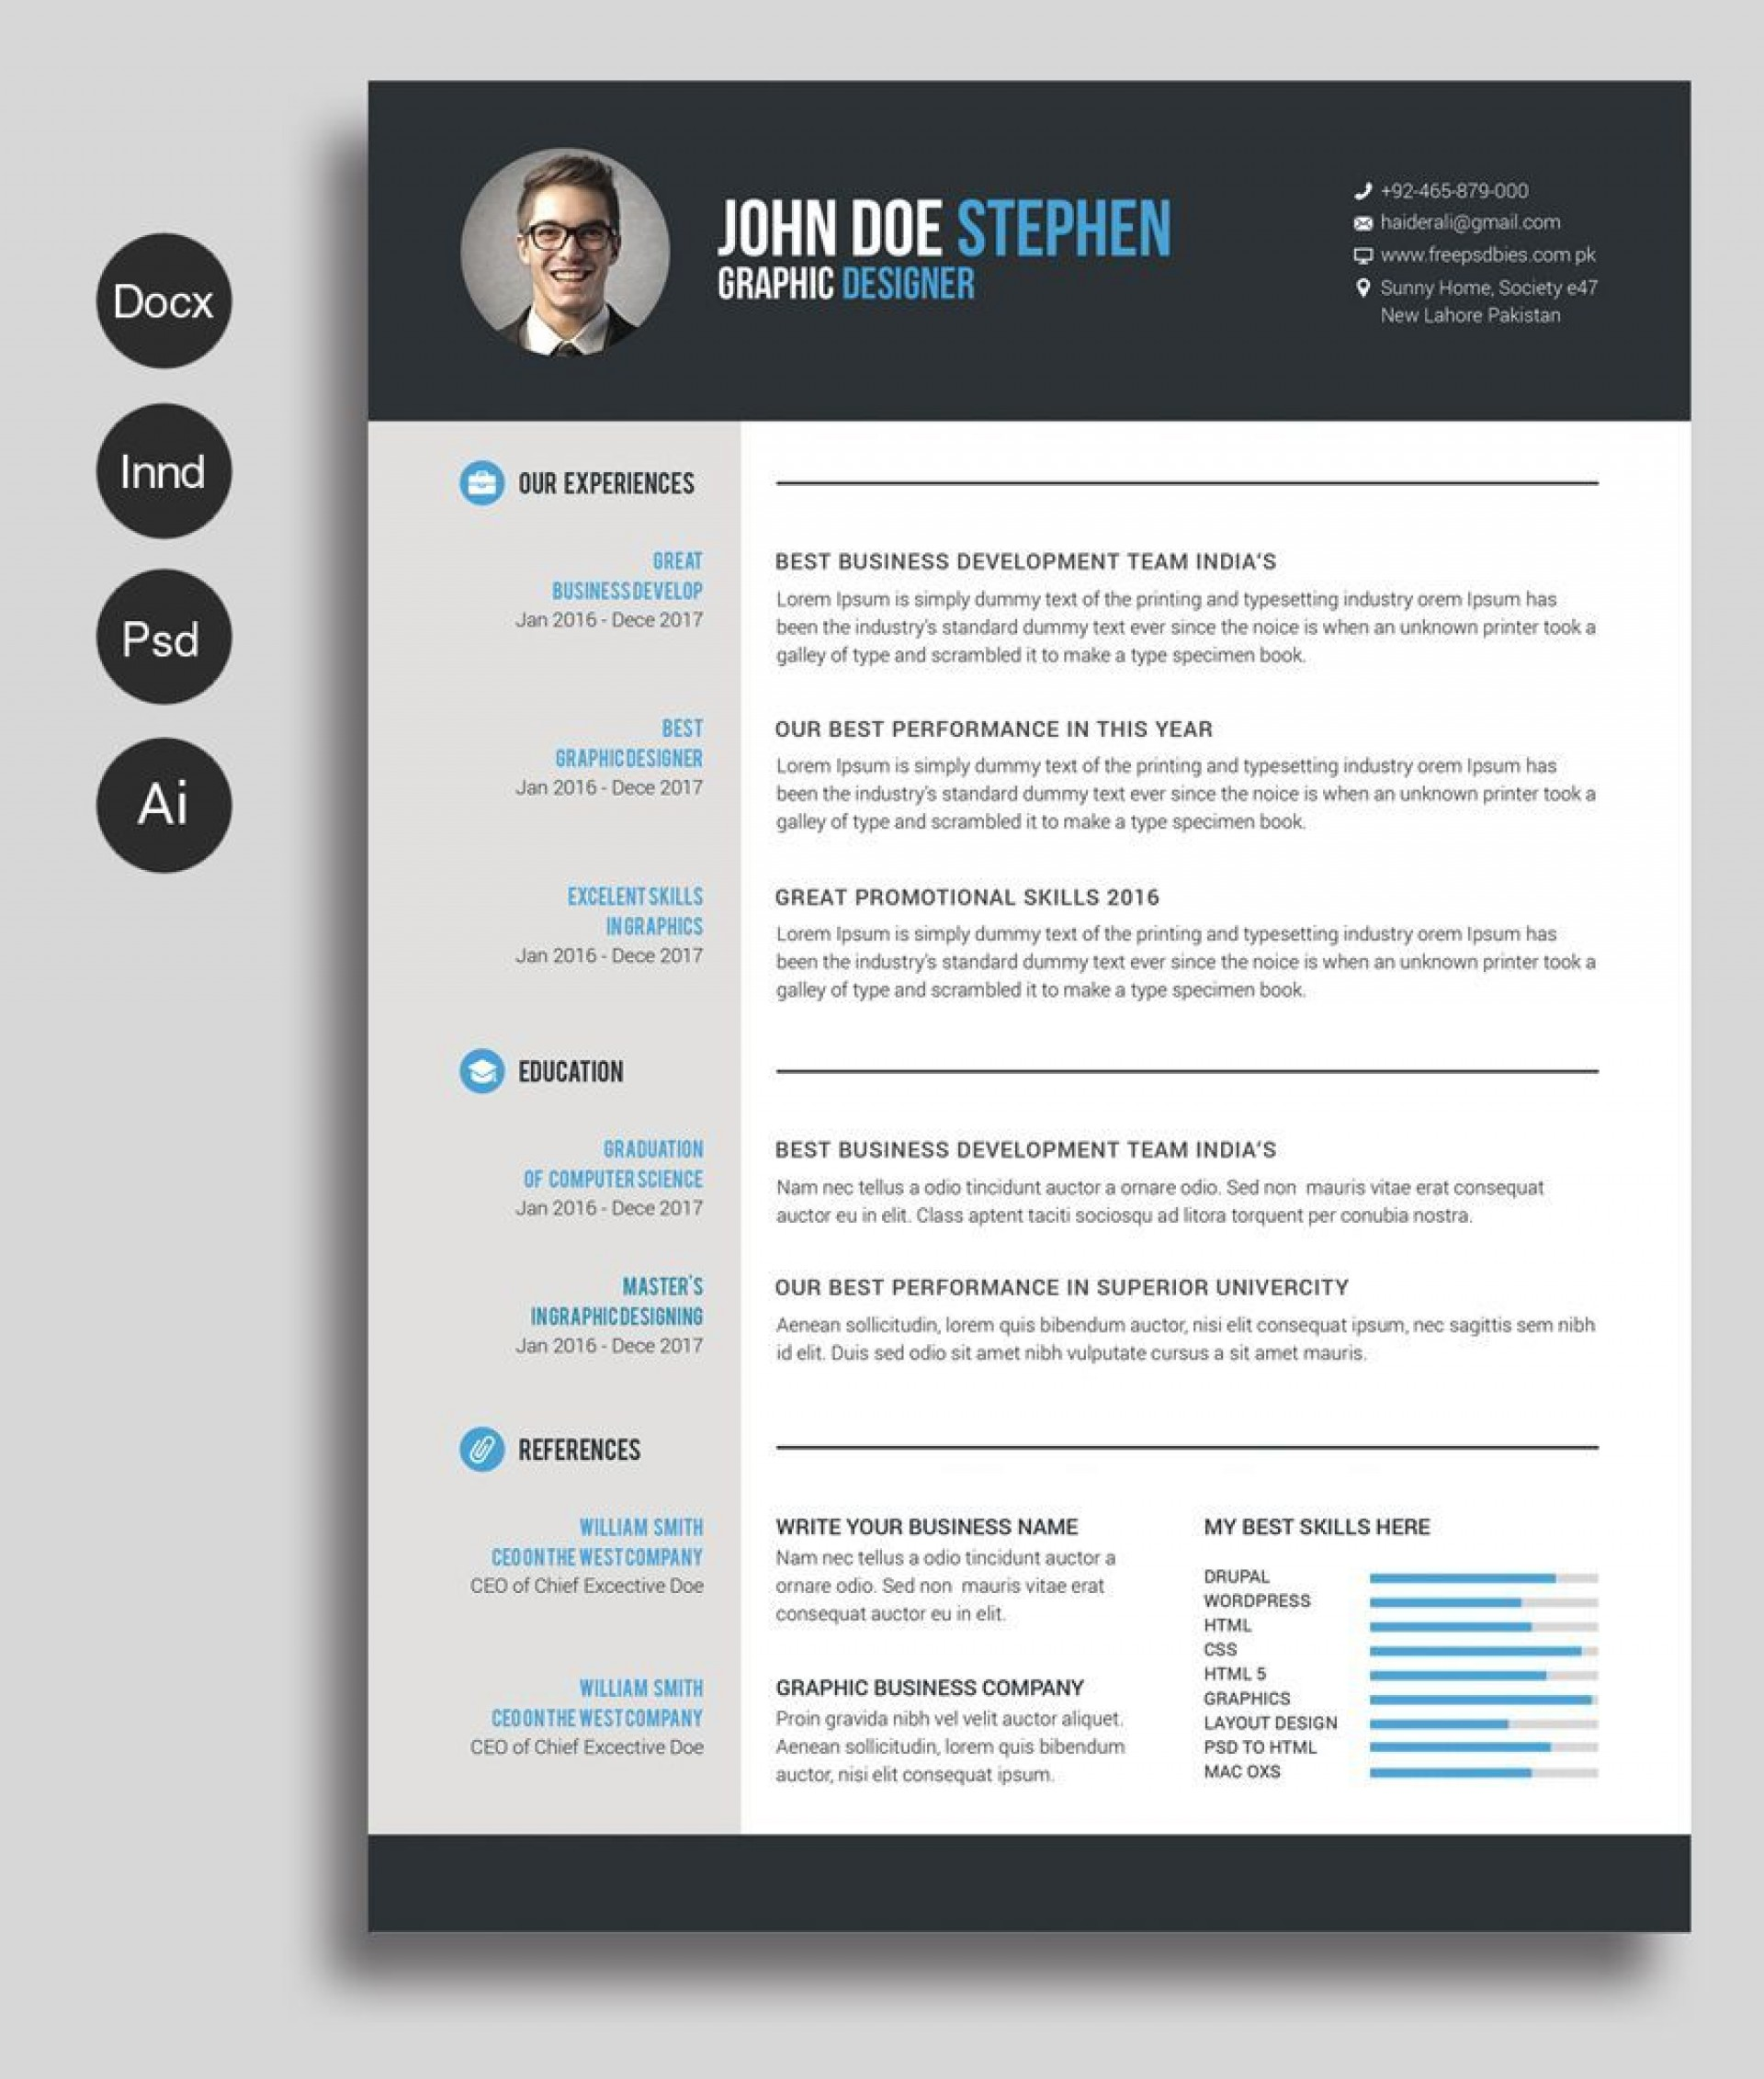 001 Best Professional Resume Template Free Download Word Highest Clarity  Cv 2020 Format With Photo1920